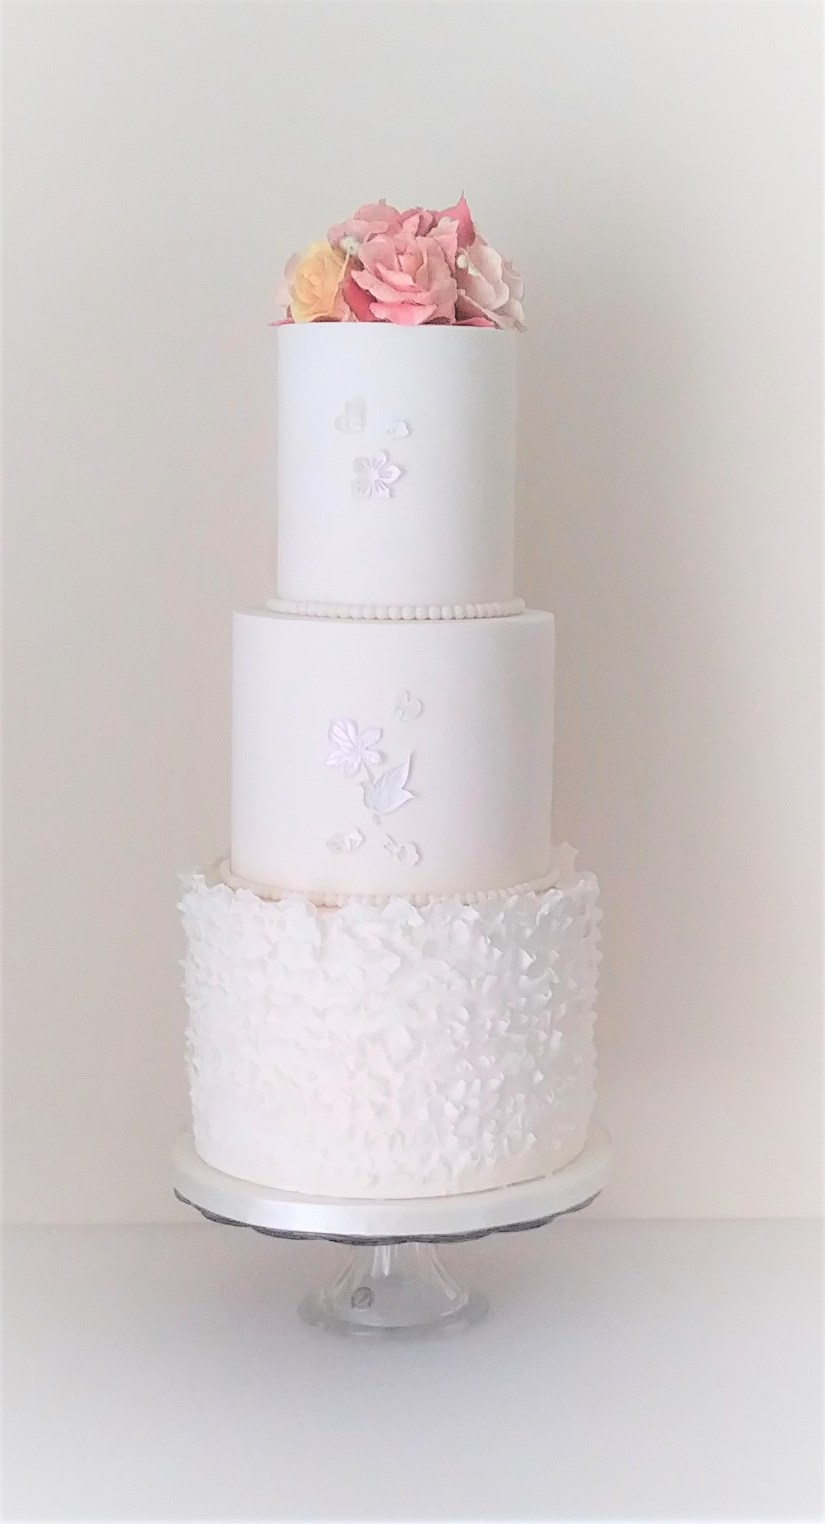 3 tier cream wedding cake with ruffles and sugar roses by Cocoa & Whey Cakes in Dorset